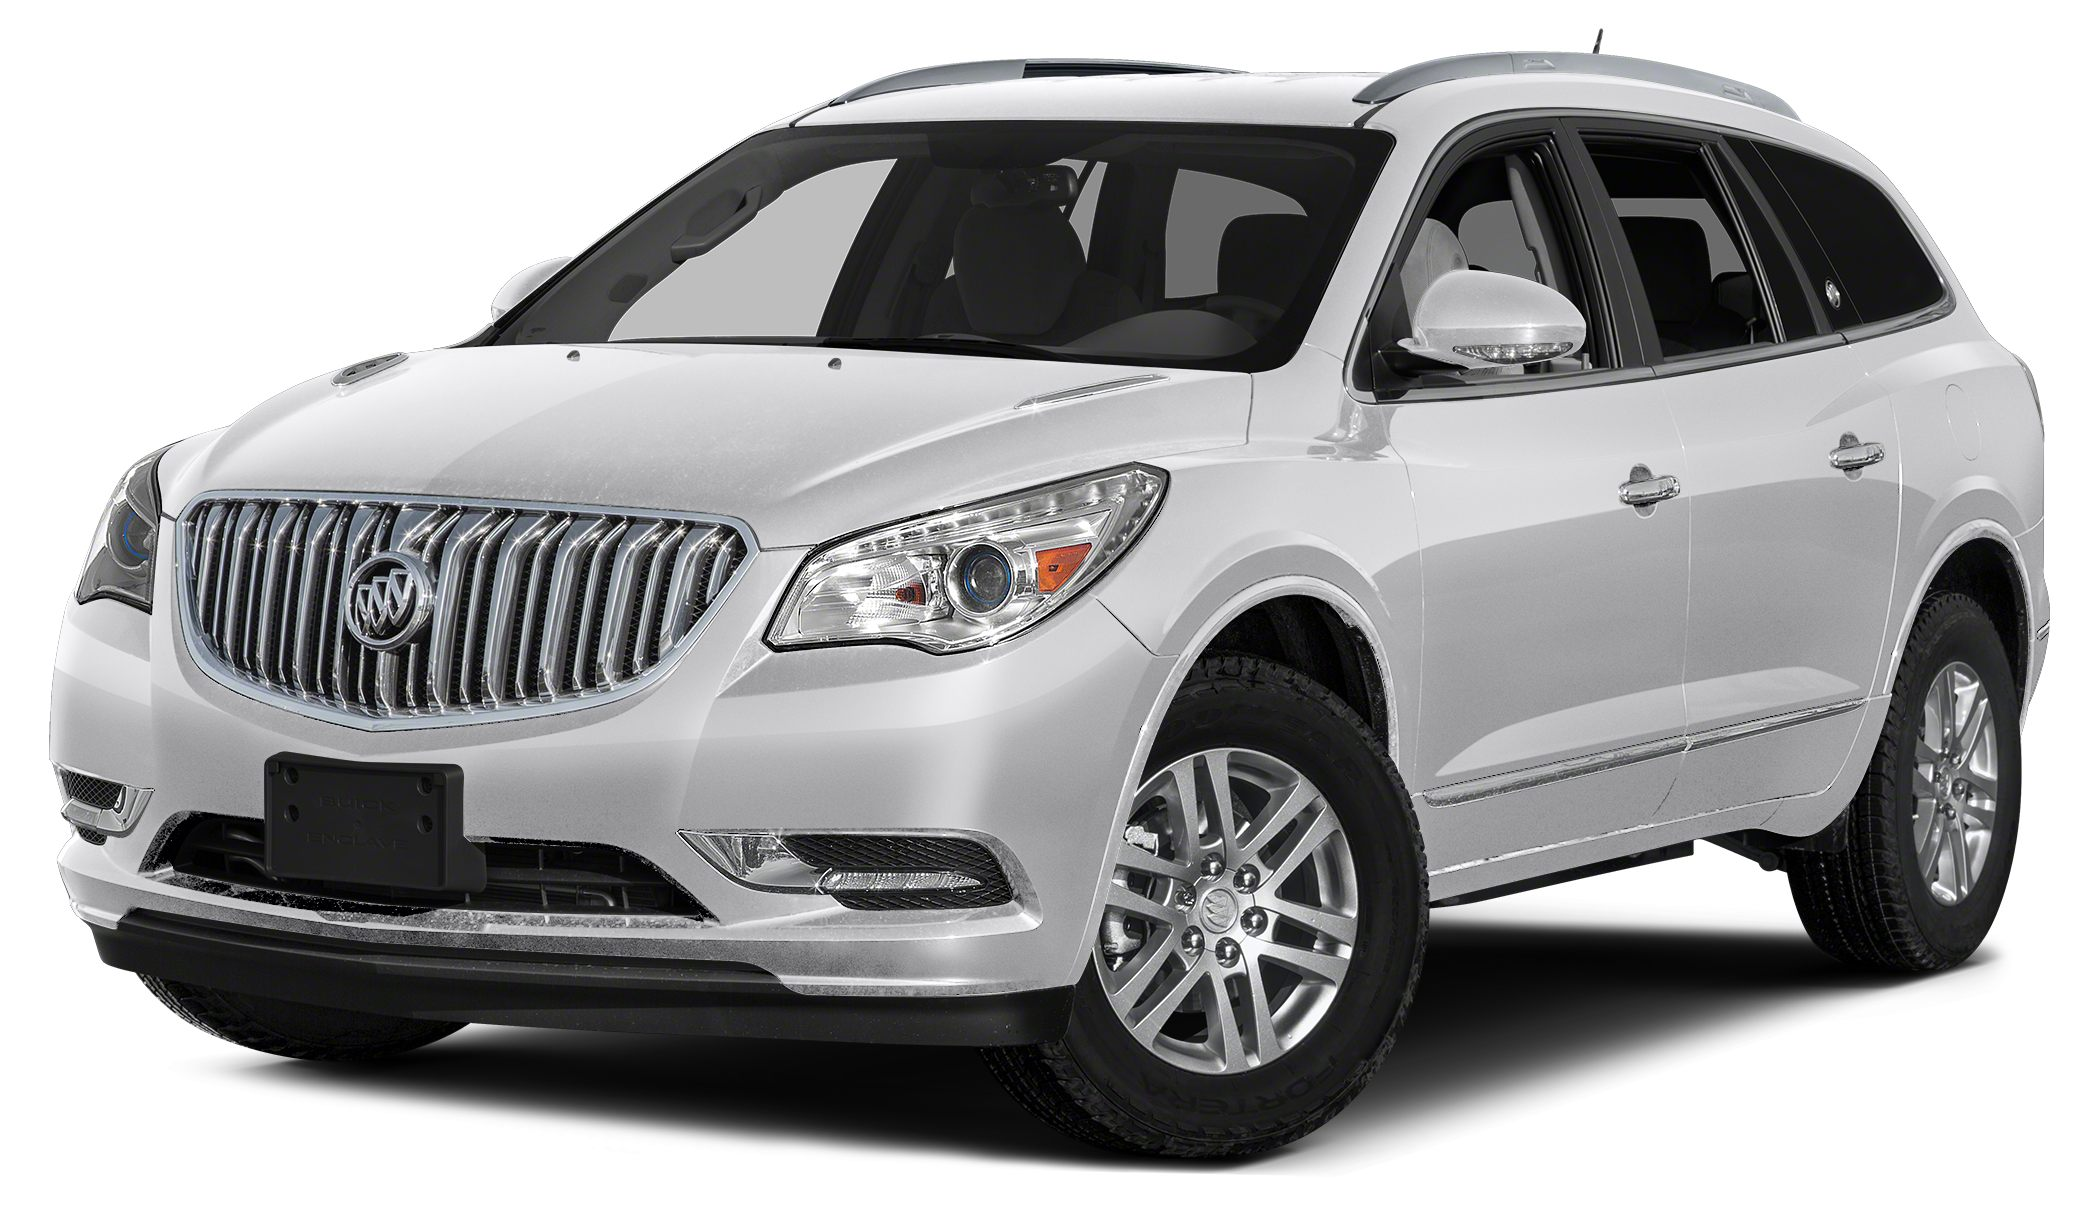 2017 Buick Enclave Premium Thank you for visiting another one of Conley Buick GMCs exclusive list